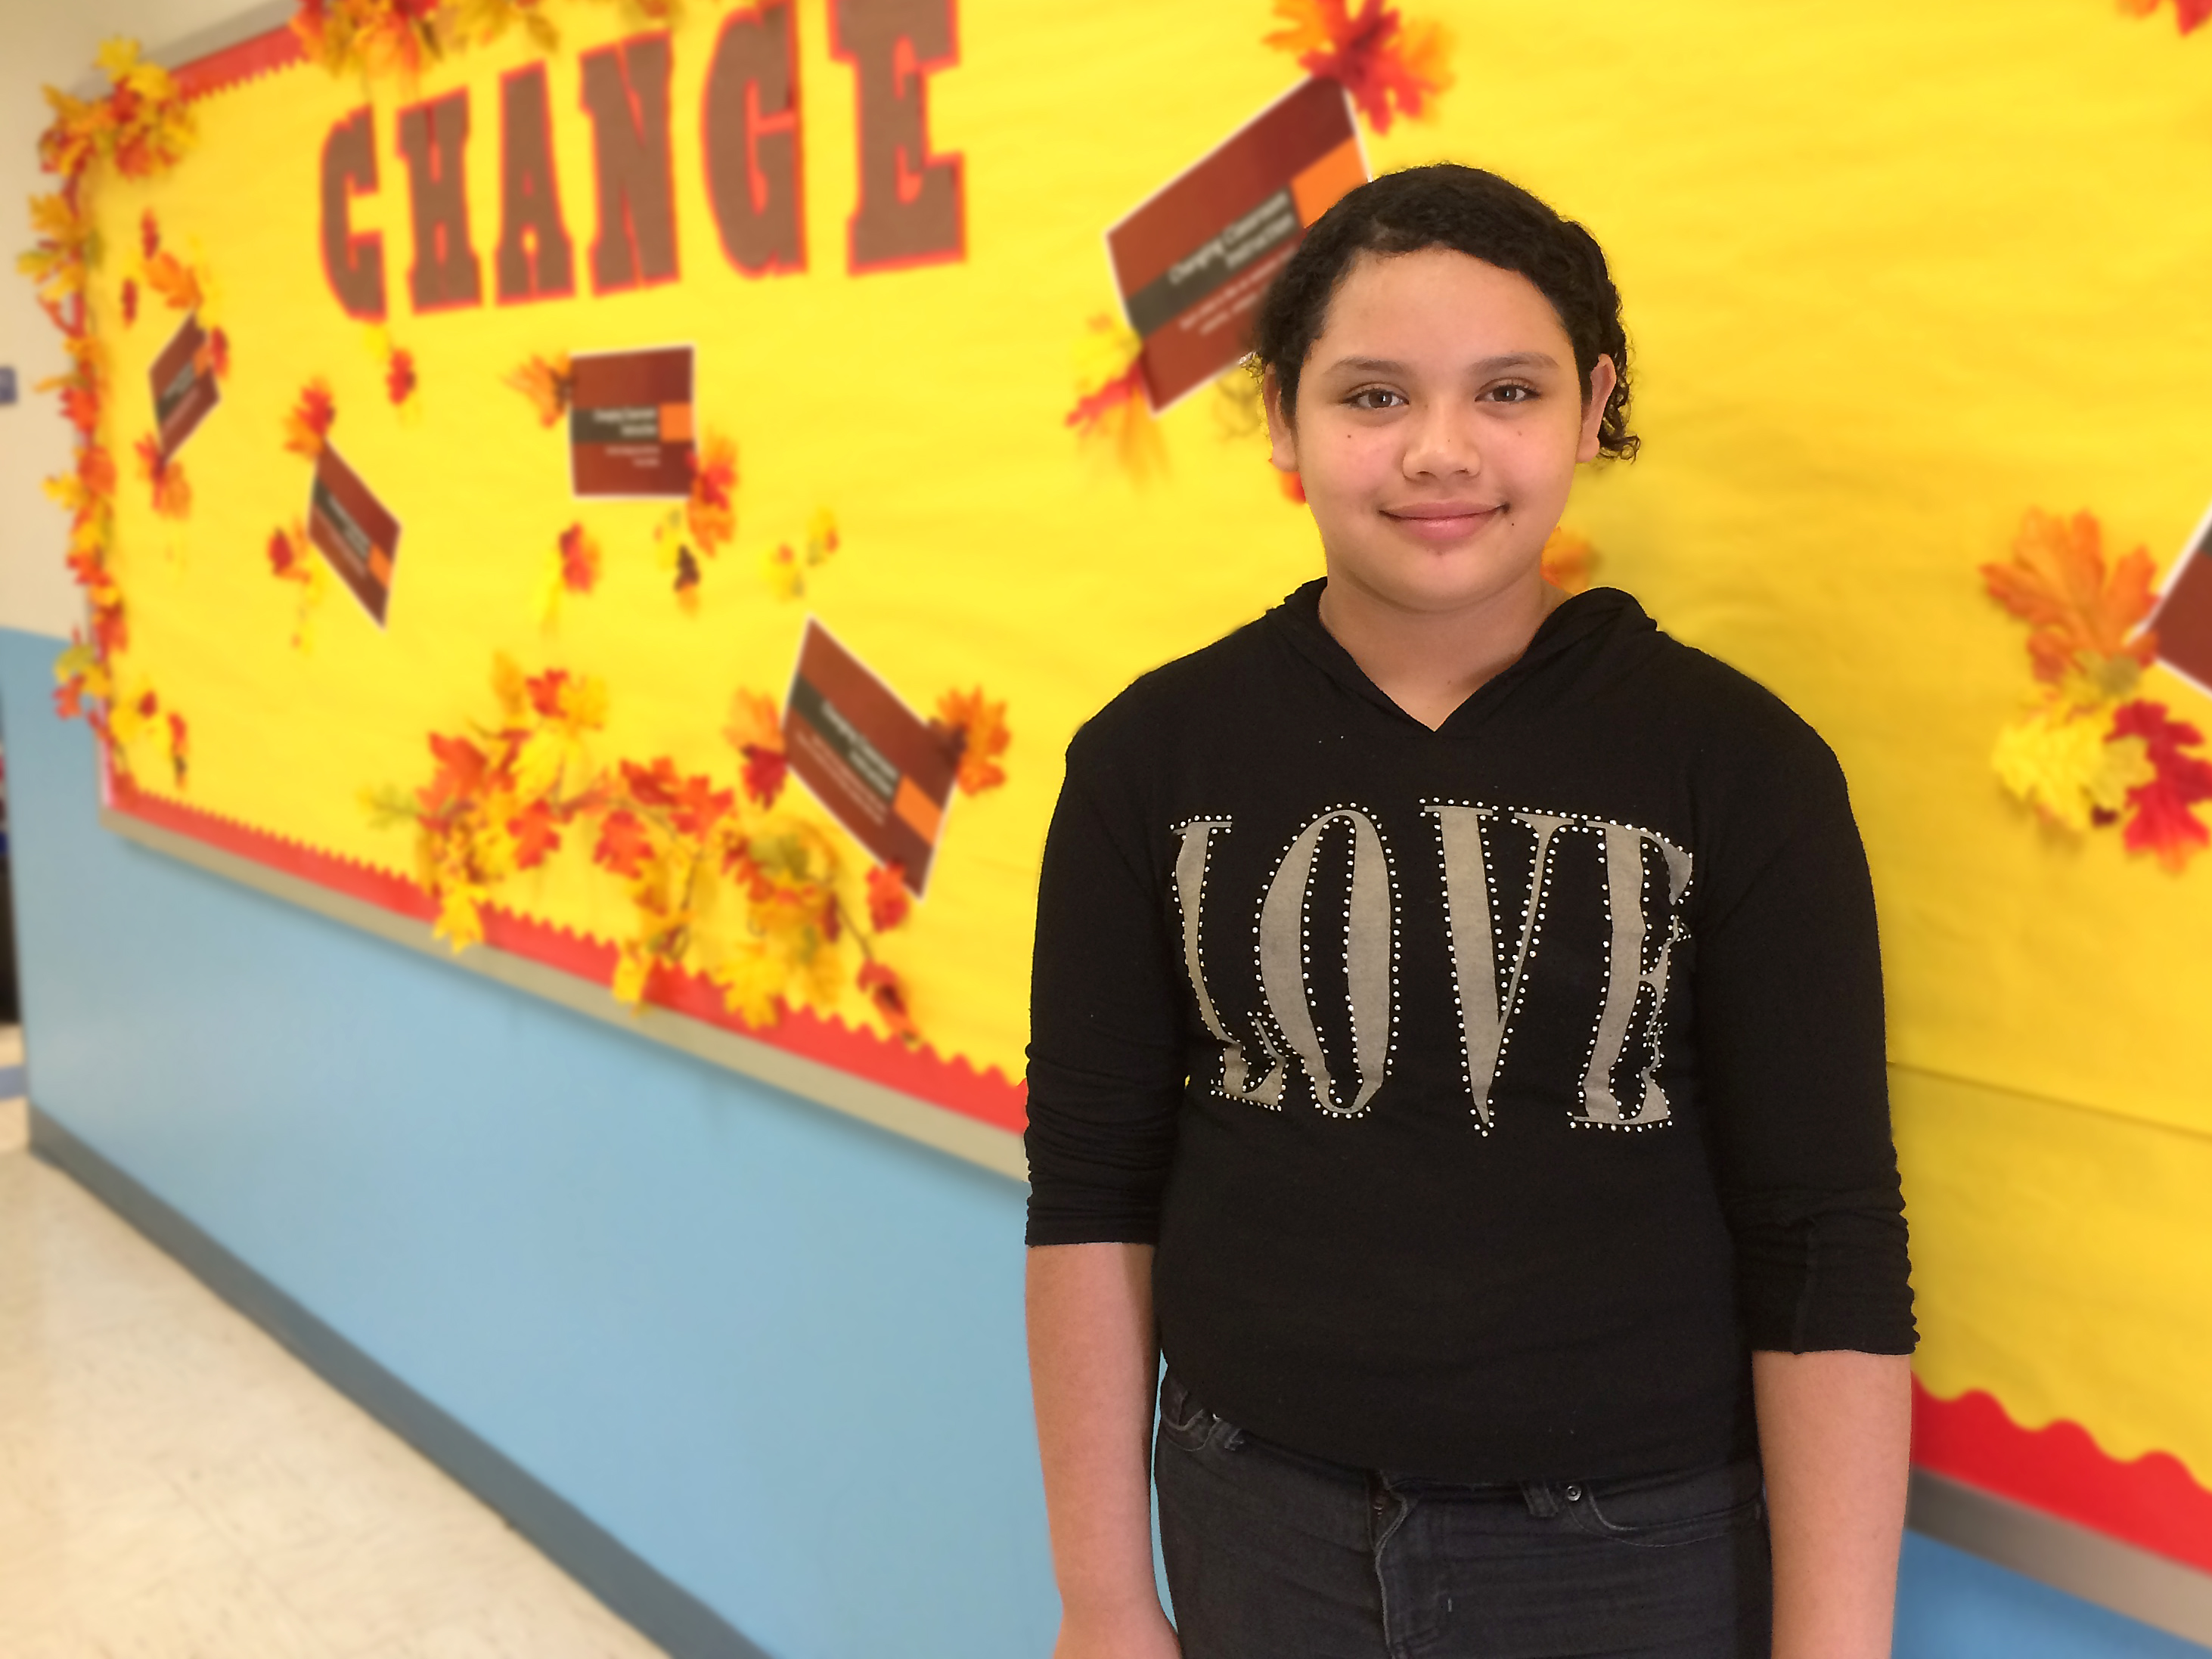 Student of the Week: Fifth grader proves that kids who read succeed